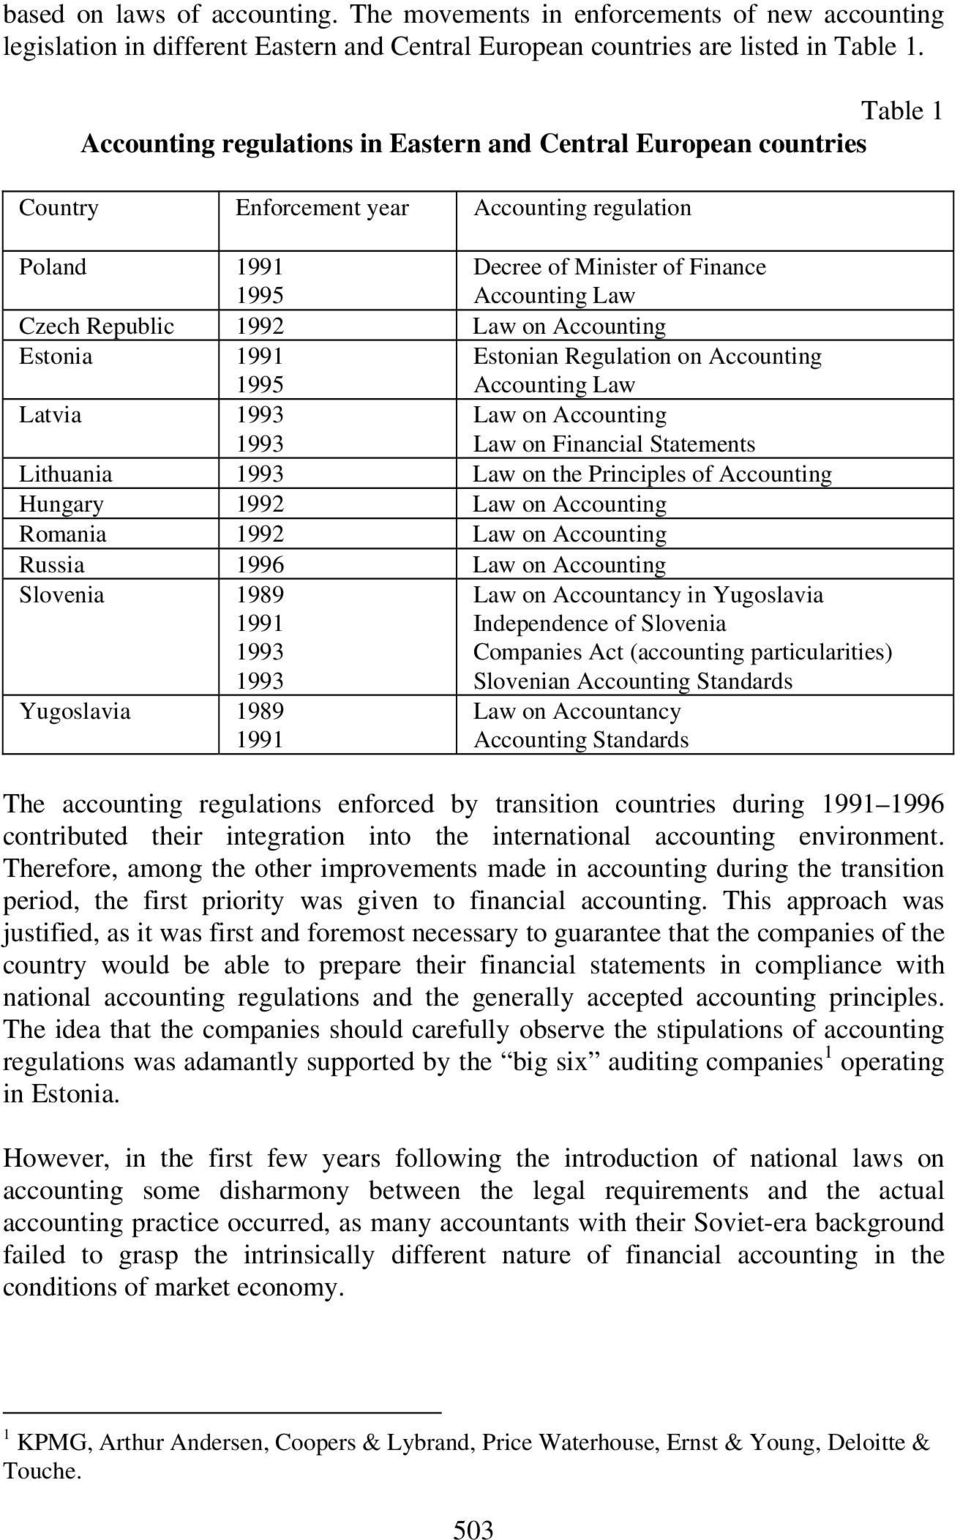 1992 Law on Accounting Estonia 1991 1995 Estonian Regulation on Accounting Accounting Law Latvia 1993 1993 Law on Accounting Law on Financial Statements Lithuania 1993 Law on the Principles of